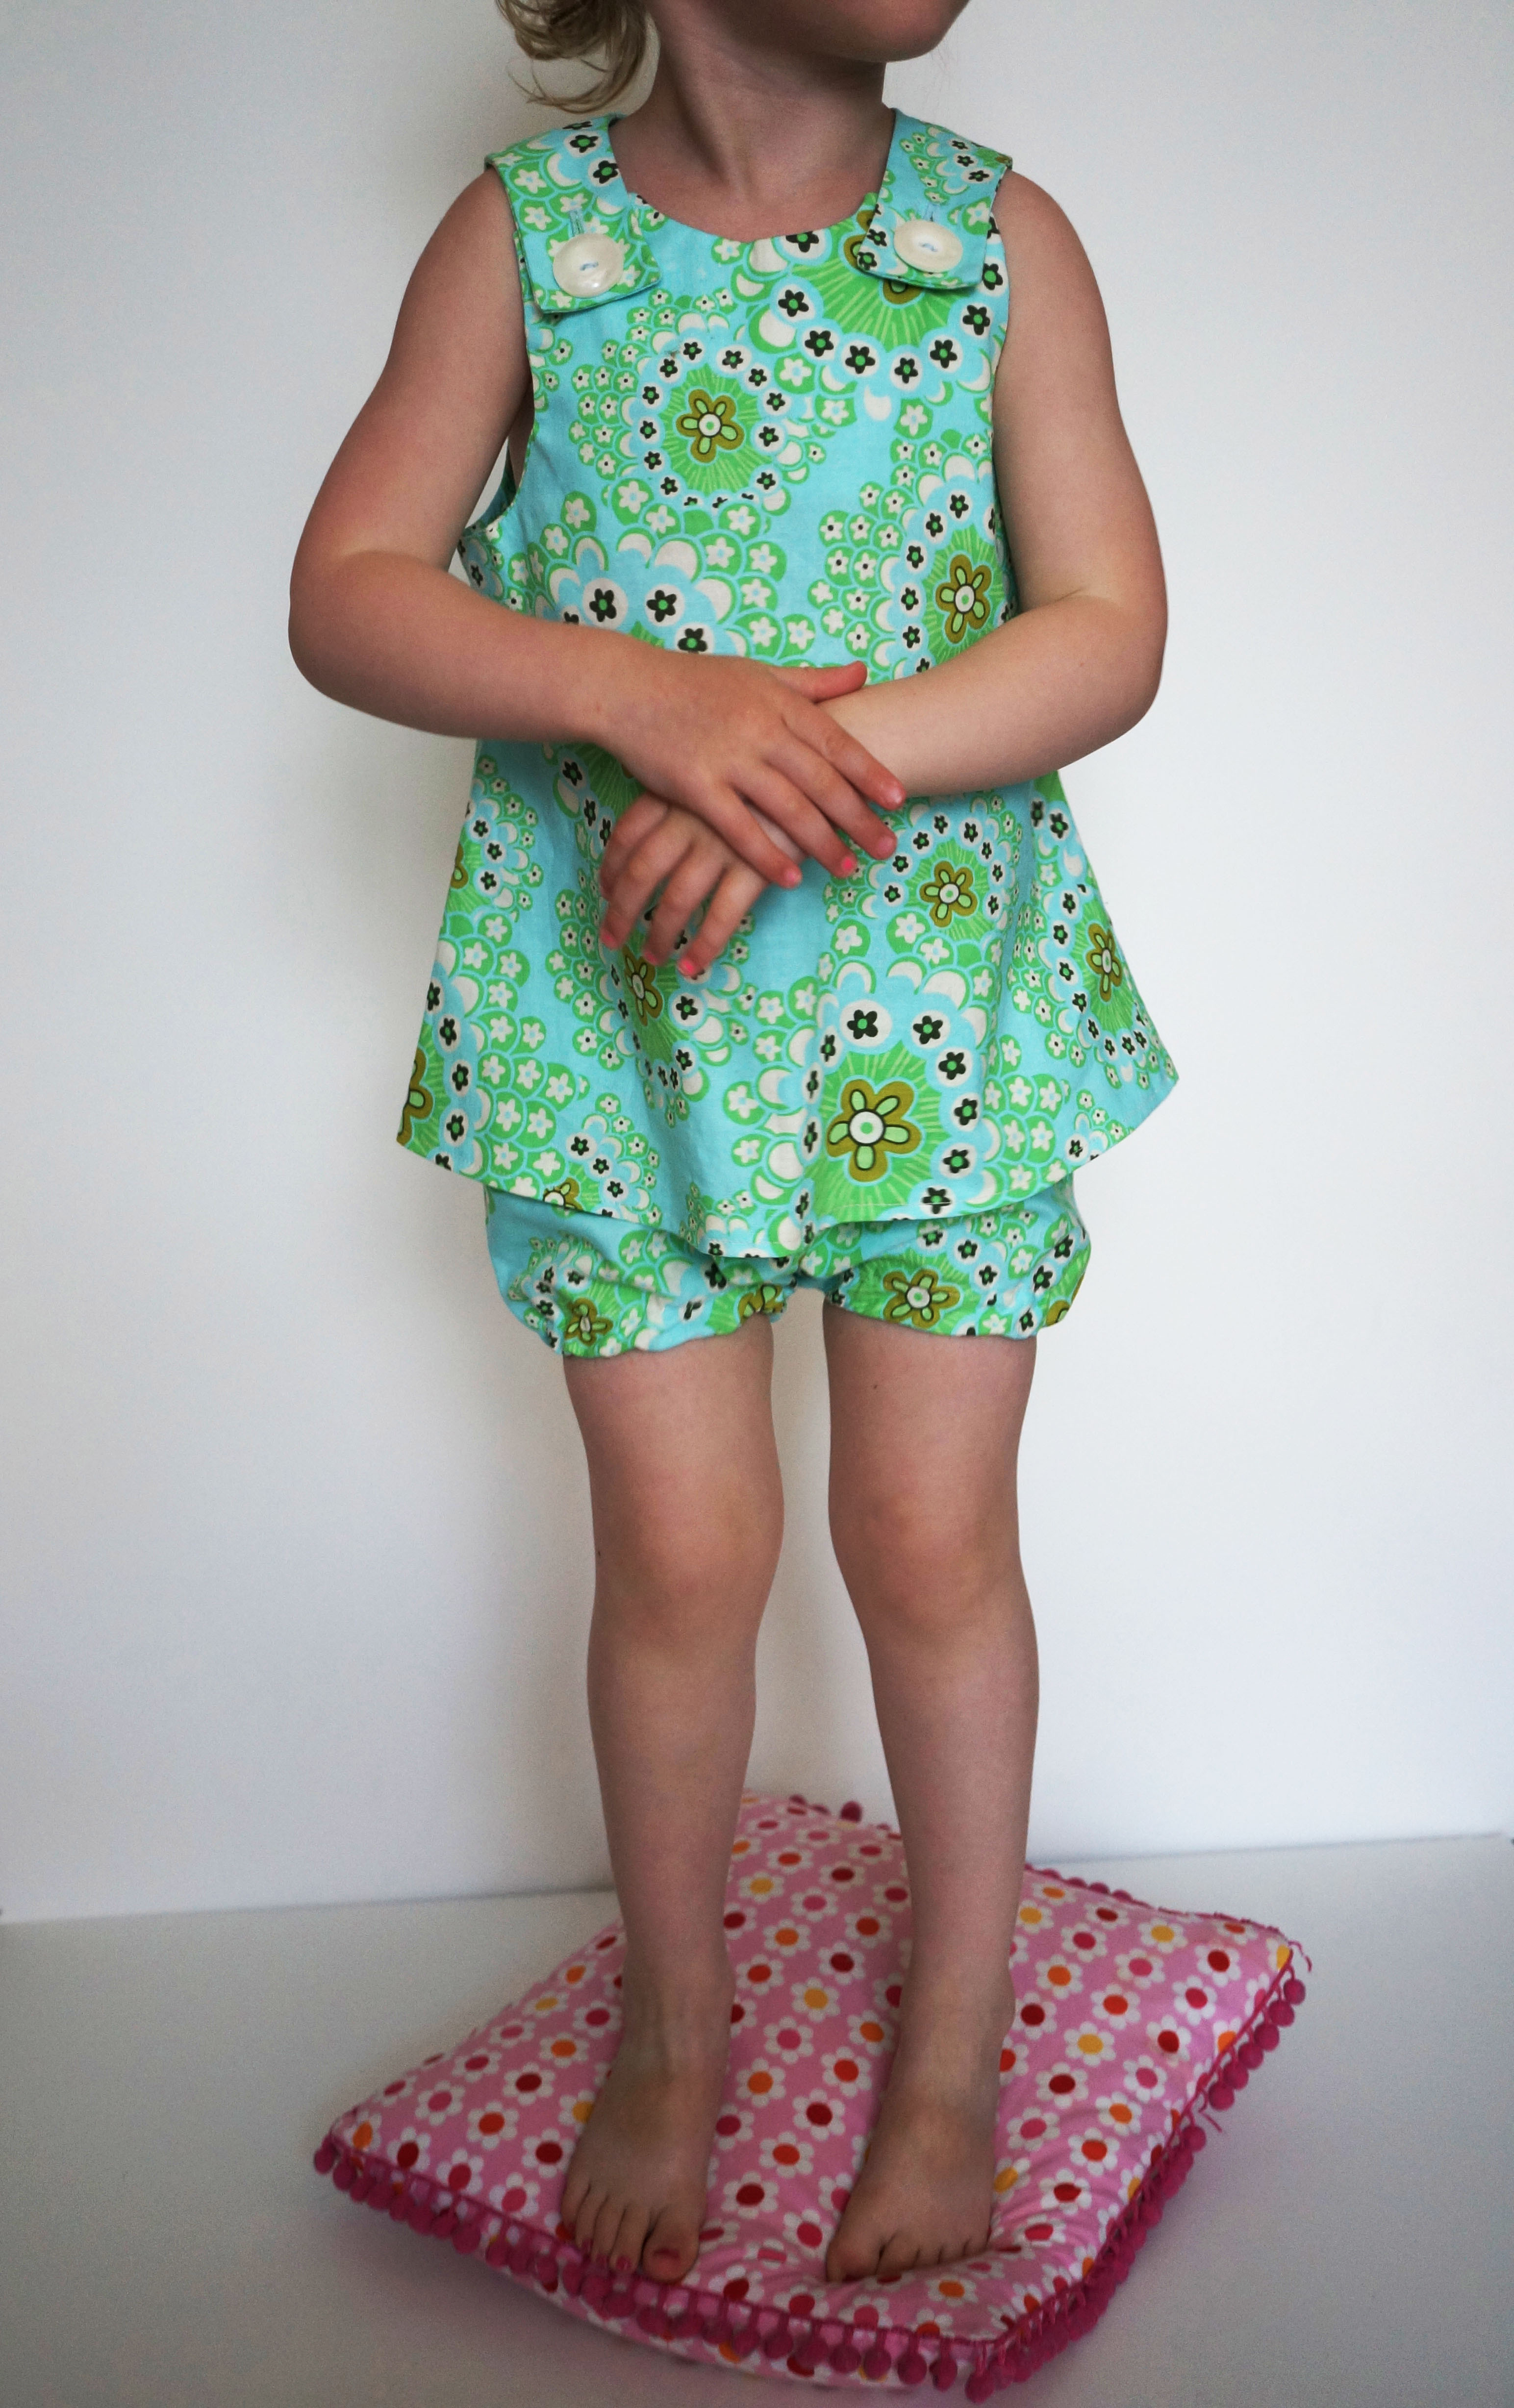 Toddler Dress Patterns Inspirational toddler Summer Dress and Bloomer Pattern Of Contemporary 40 Pictures toddler Dress Patterns